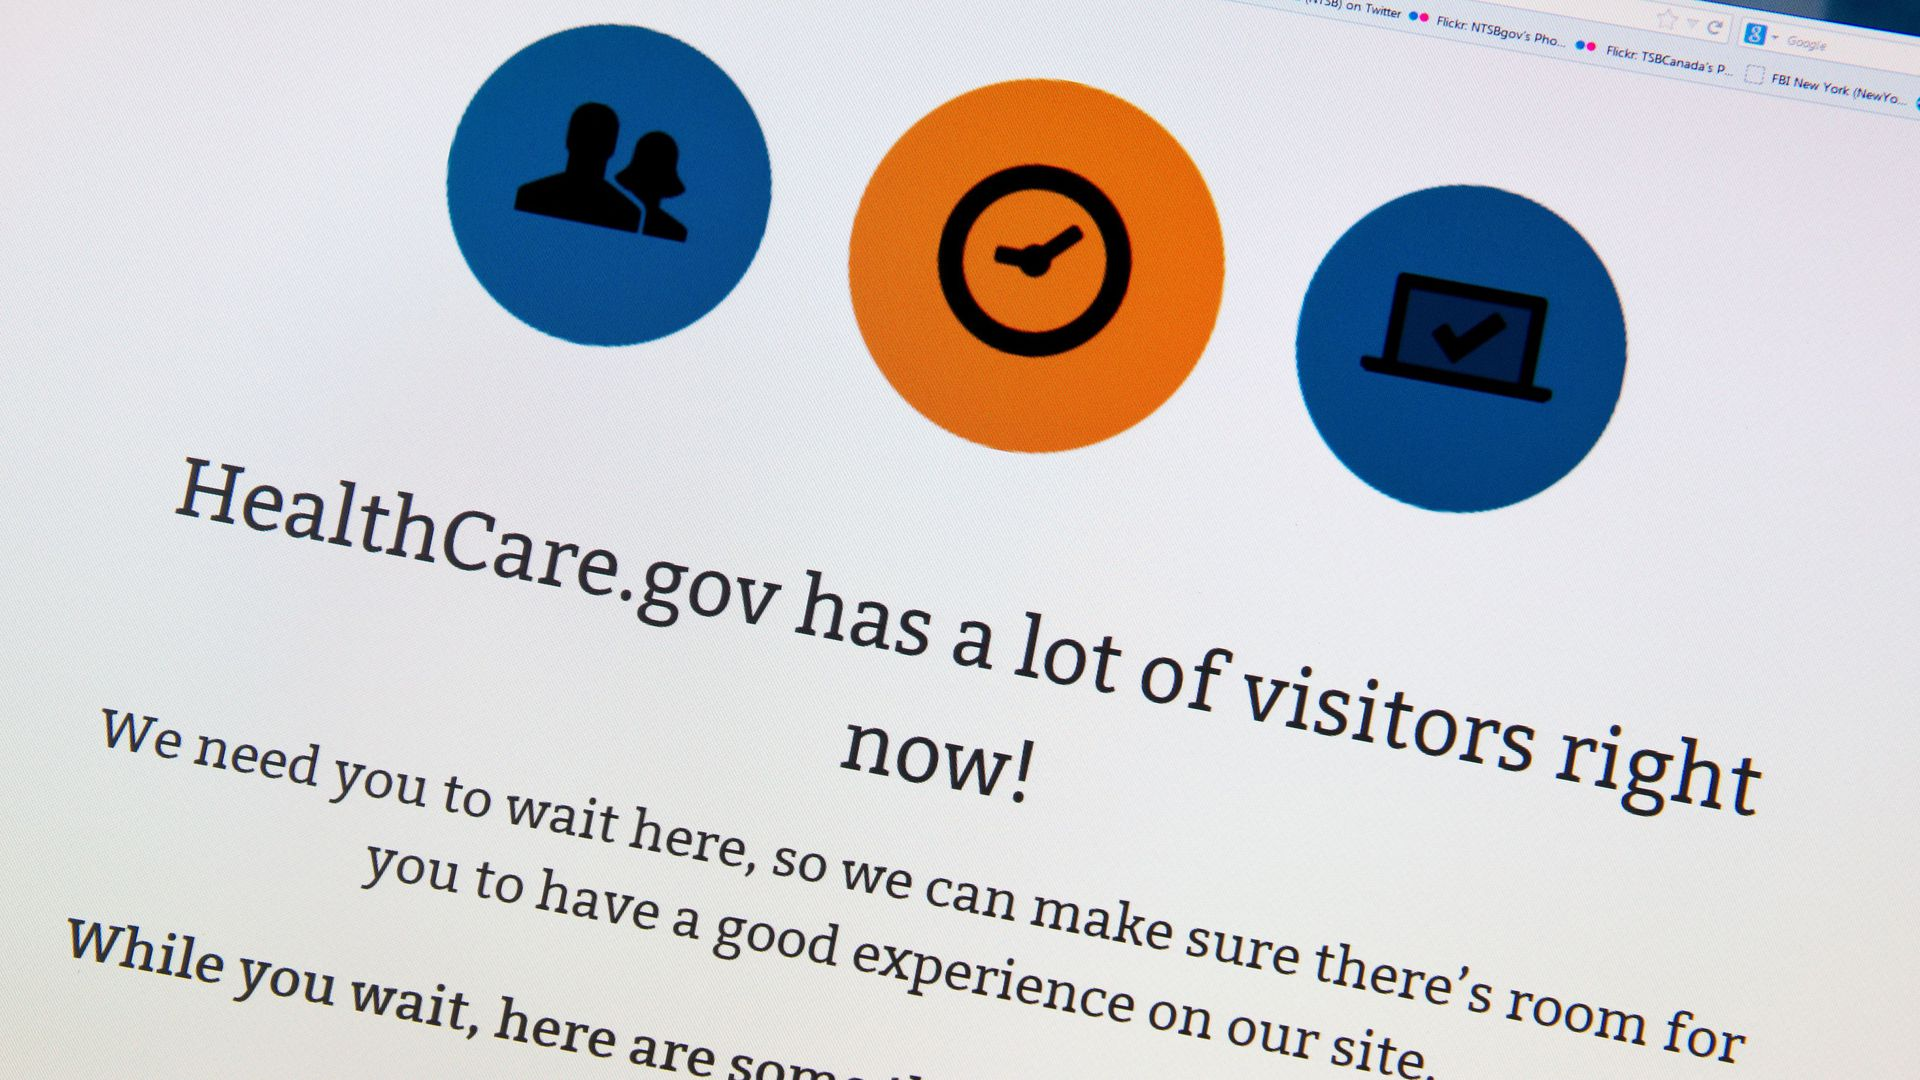 A photo of a screen showing that healthcare.gov has a lot of visitors